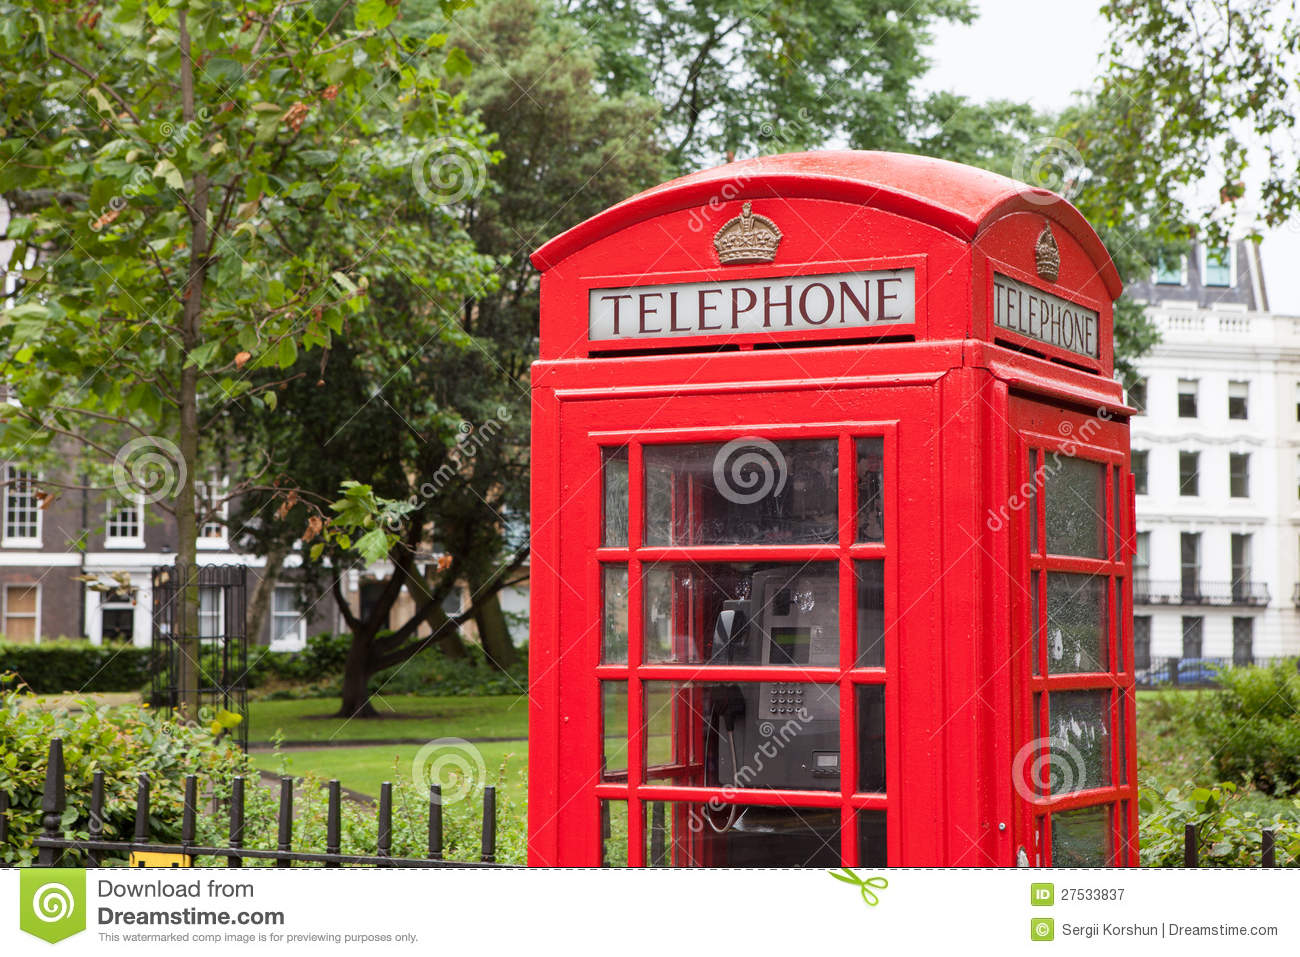 London Symbol Telephone Box In Residential Area Stock Image - Image